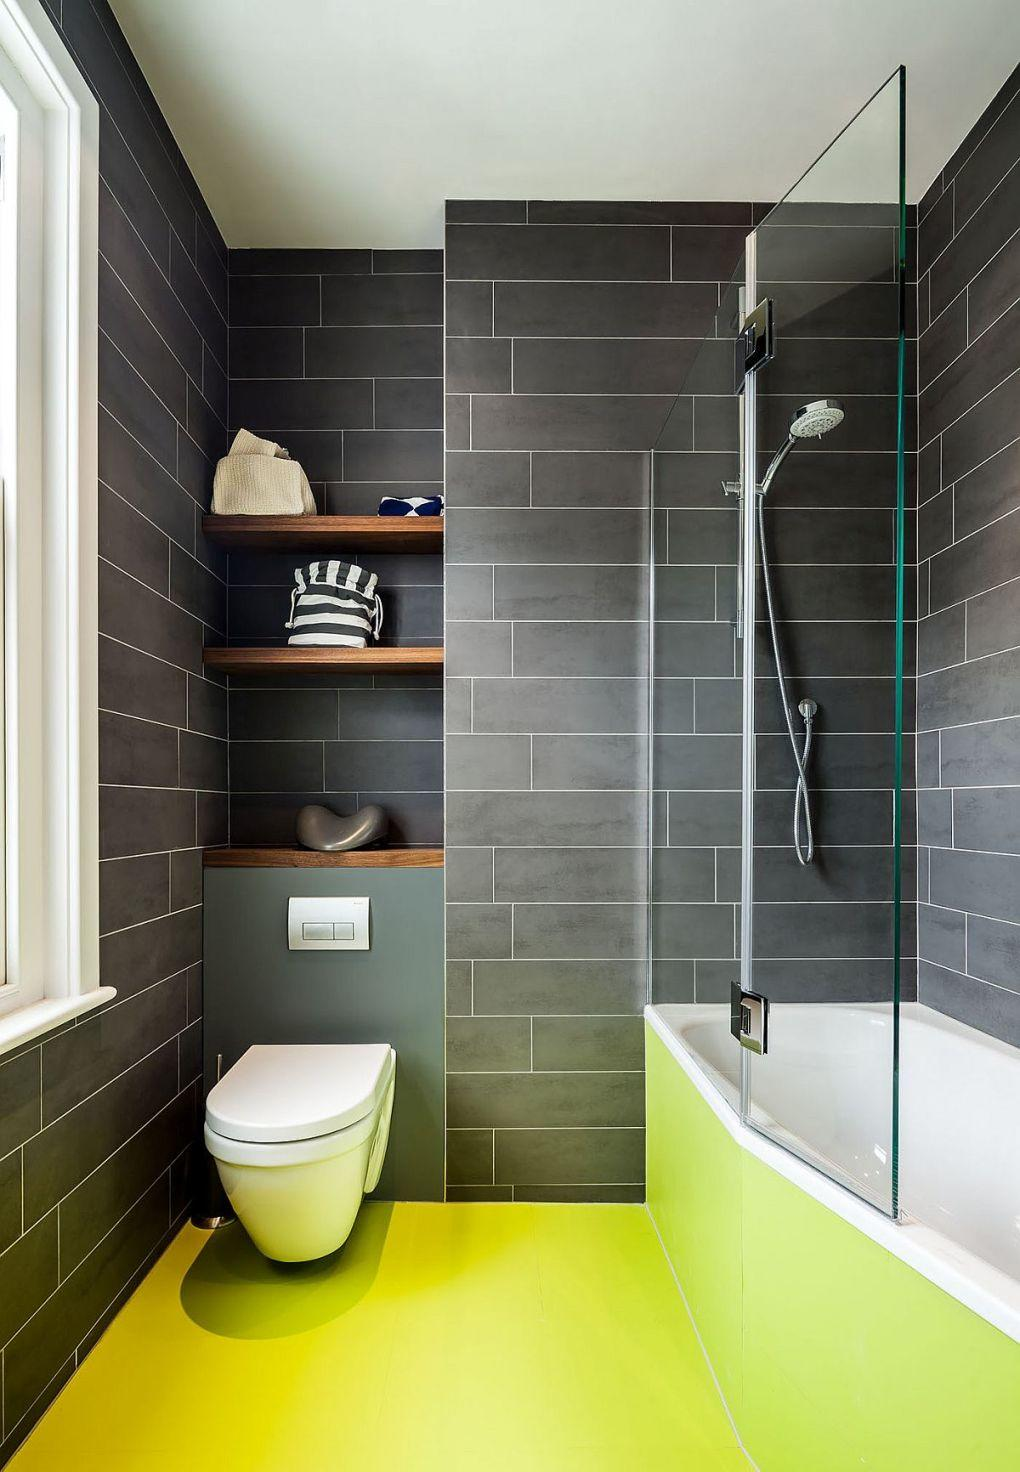 Eski Ev Yenileme Fikirleri | Bright and beautiful bathroom in gray and black with yellow flooring 1